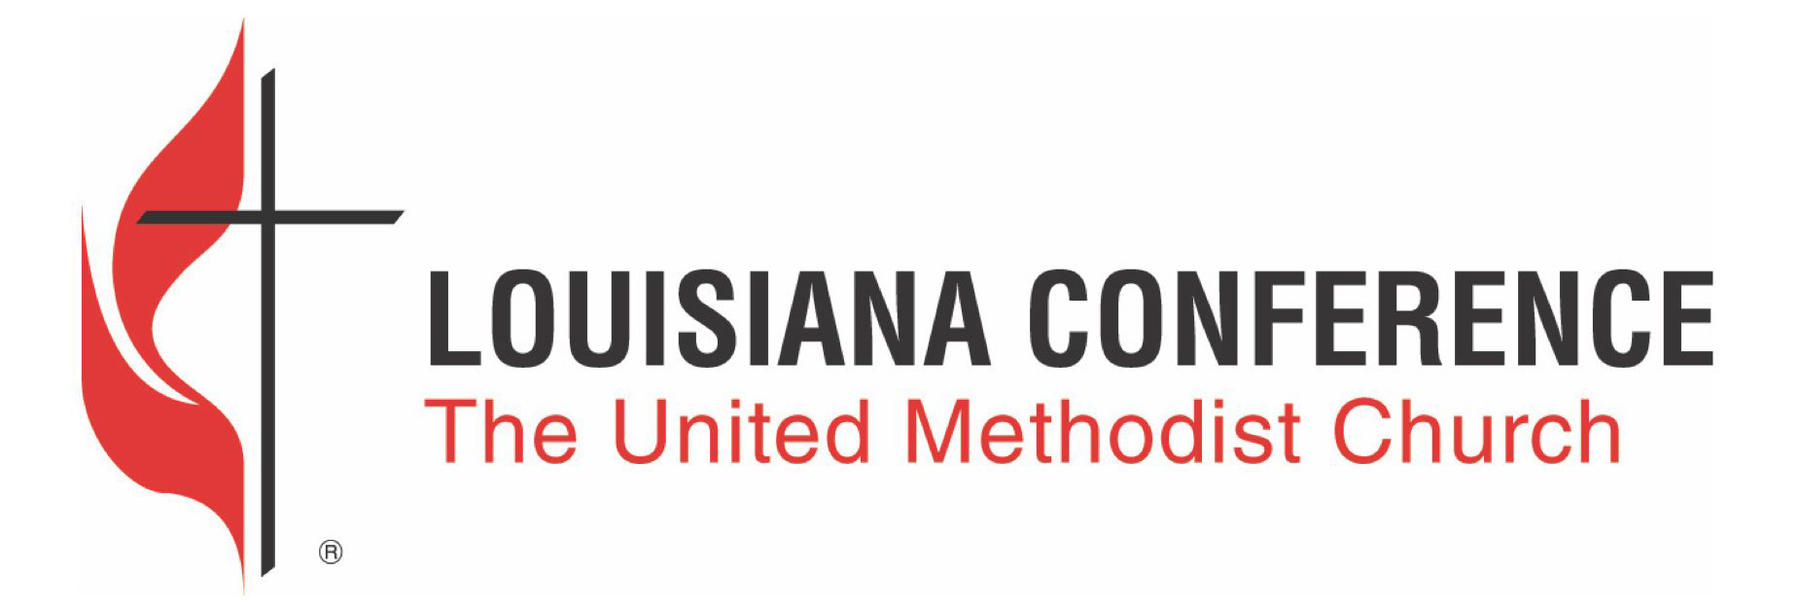 Louisiana Conference of the United Methodist Church: LAUMC Conference Relief